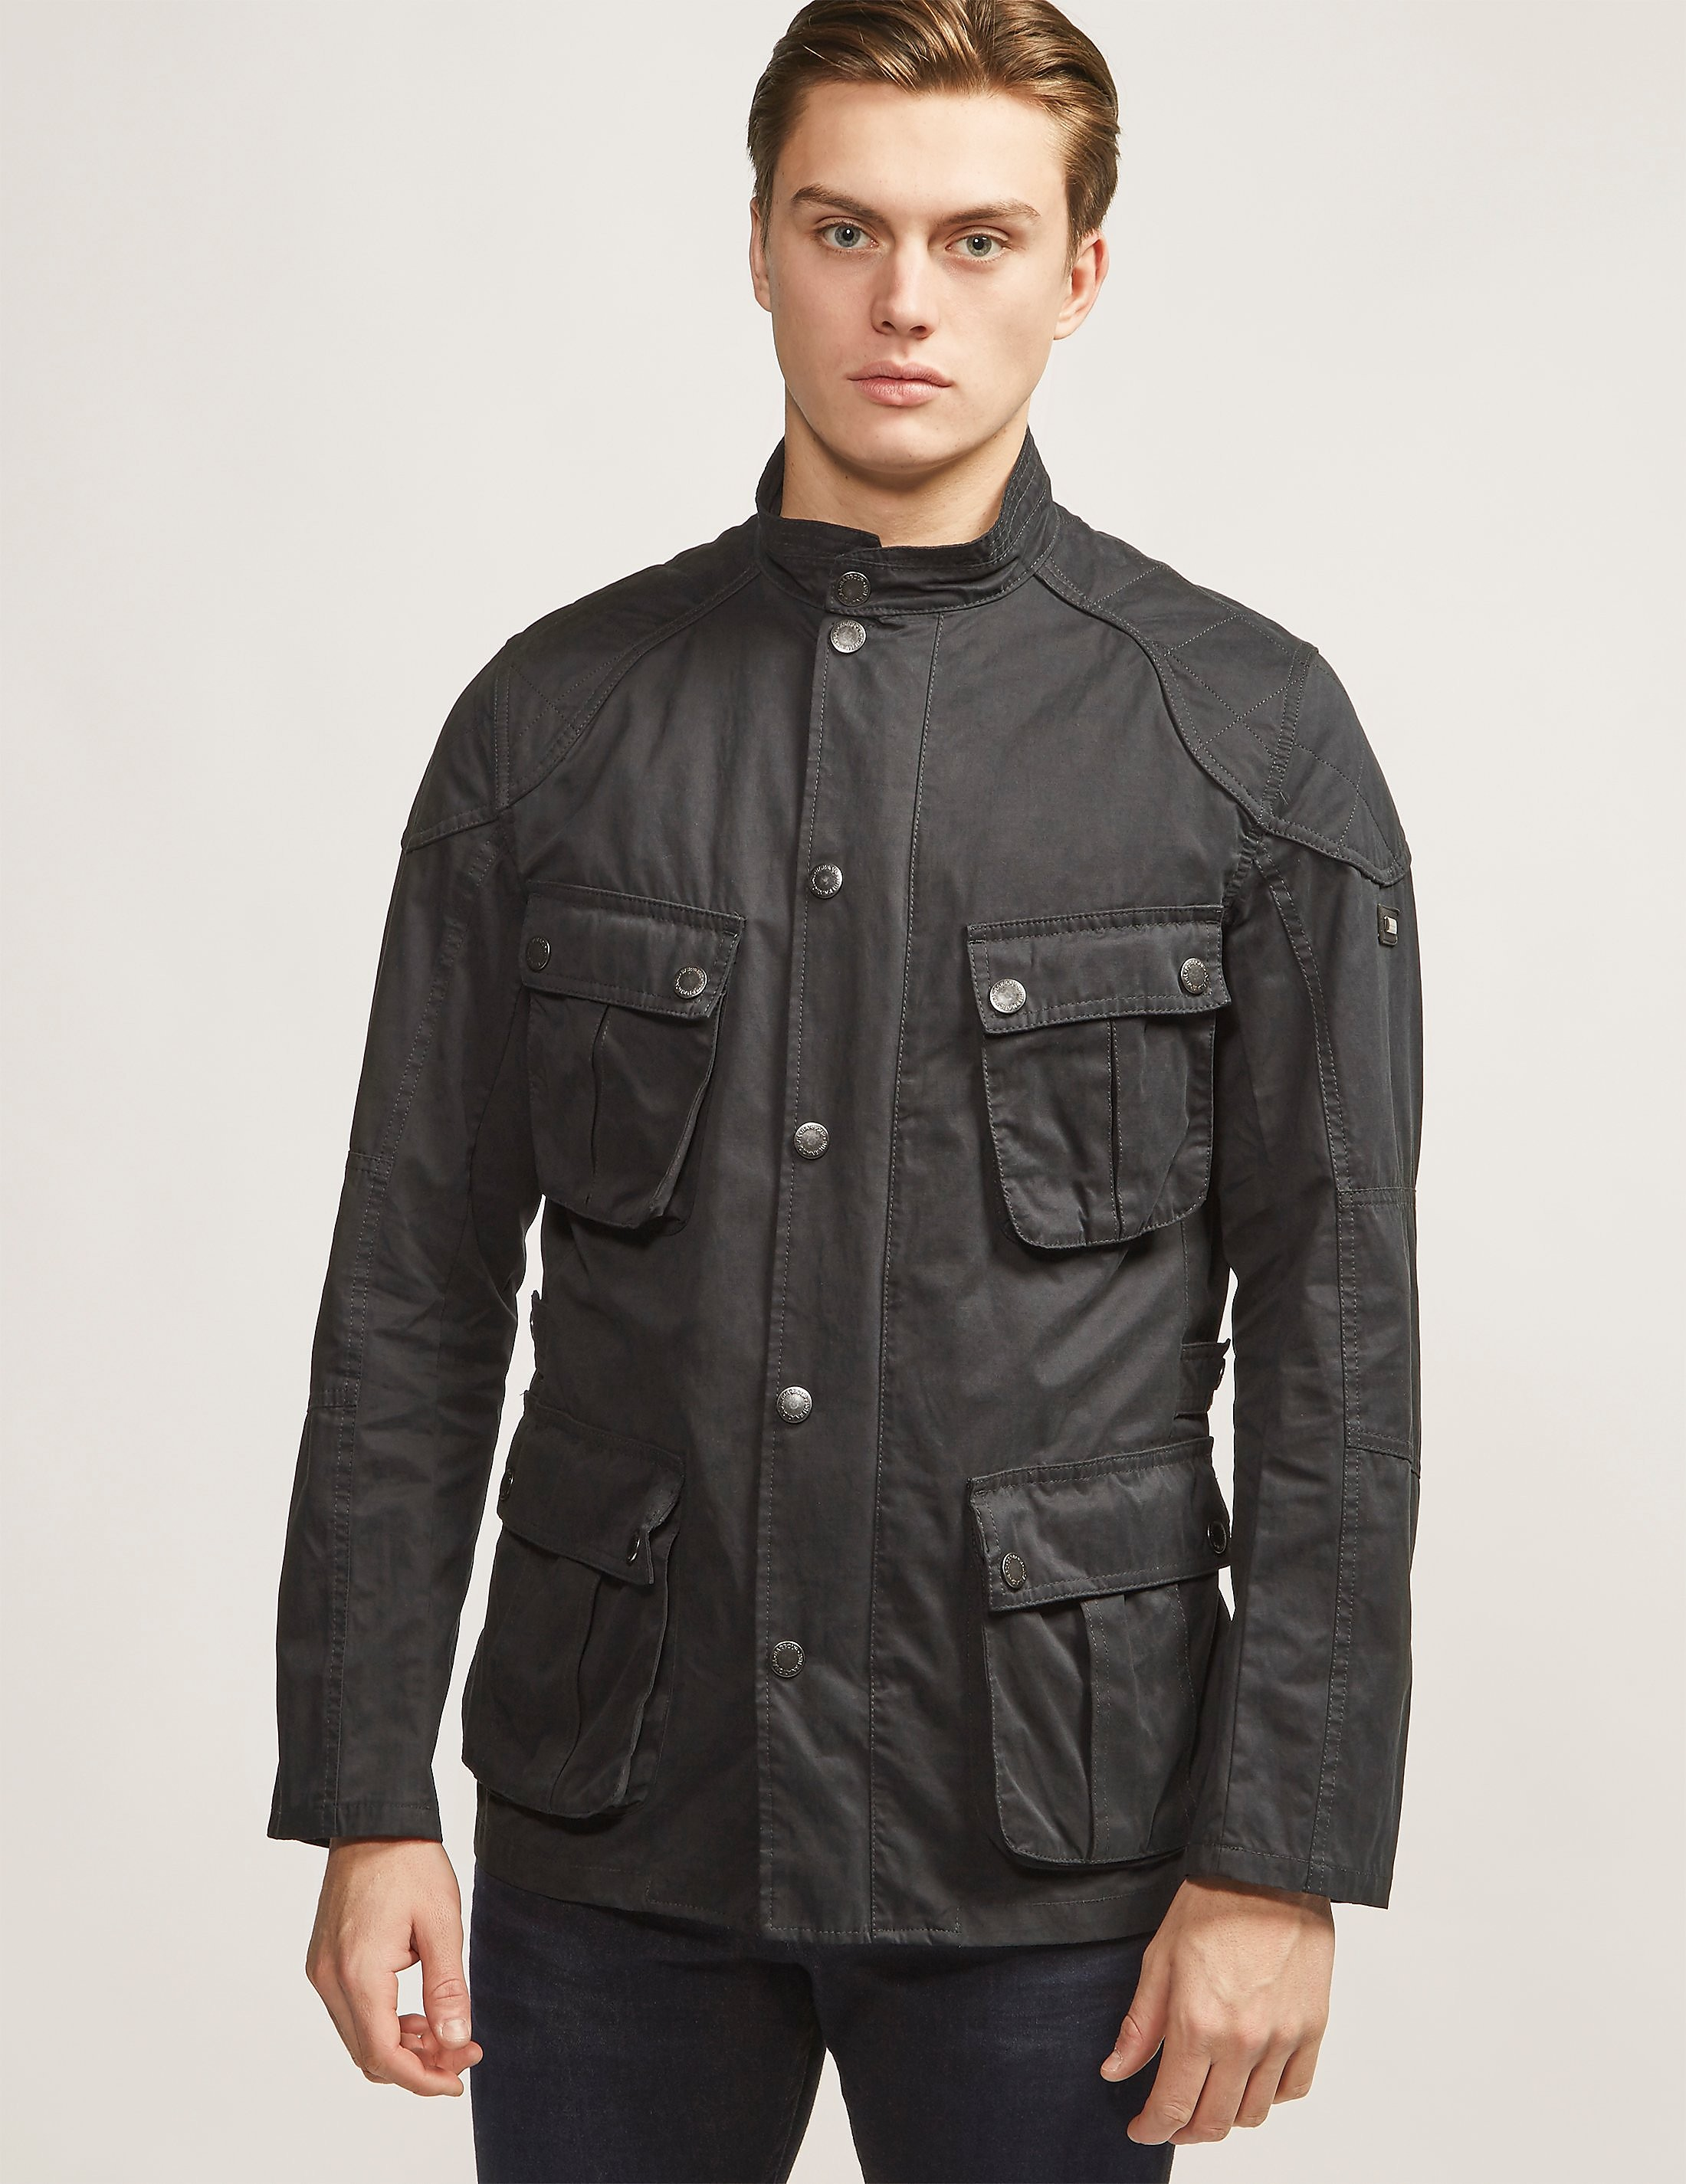 Barbour Lockseam Jacket